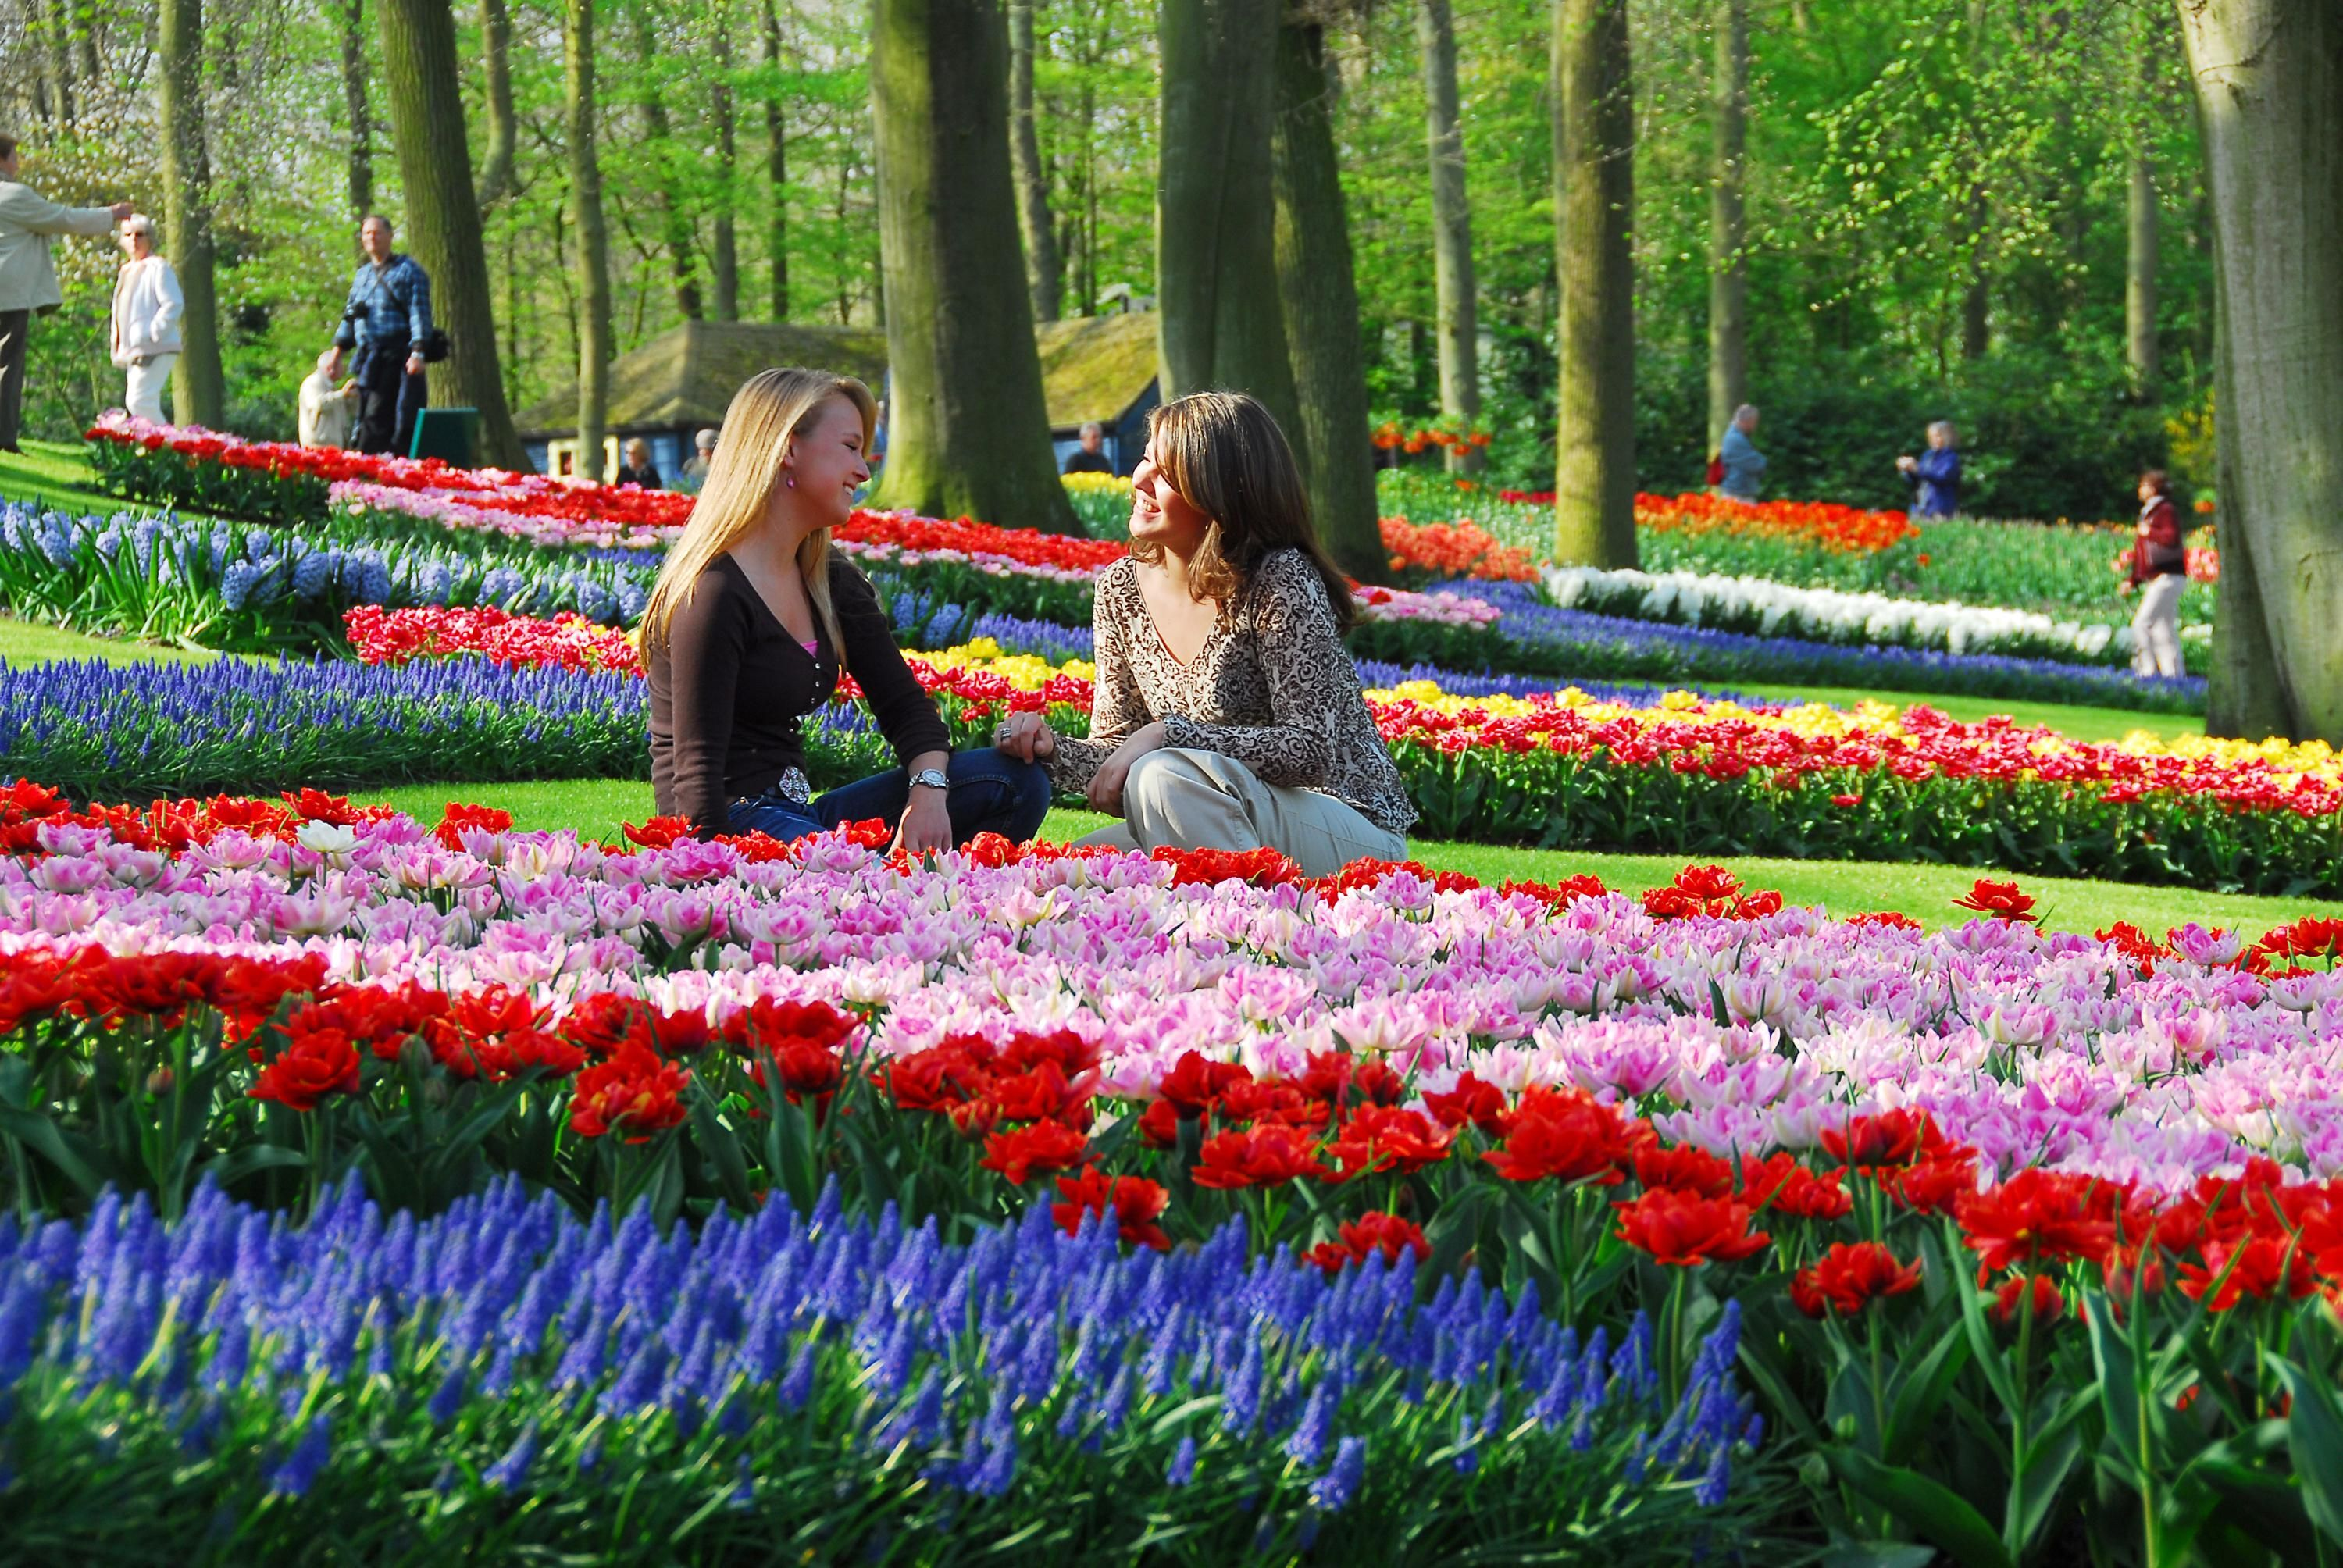 Keukenhof Gardens, Netherlands (22 March - 20 May) Transfer from Schiphol